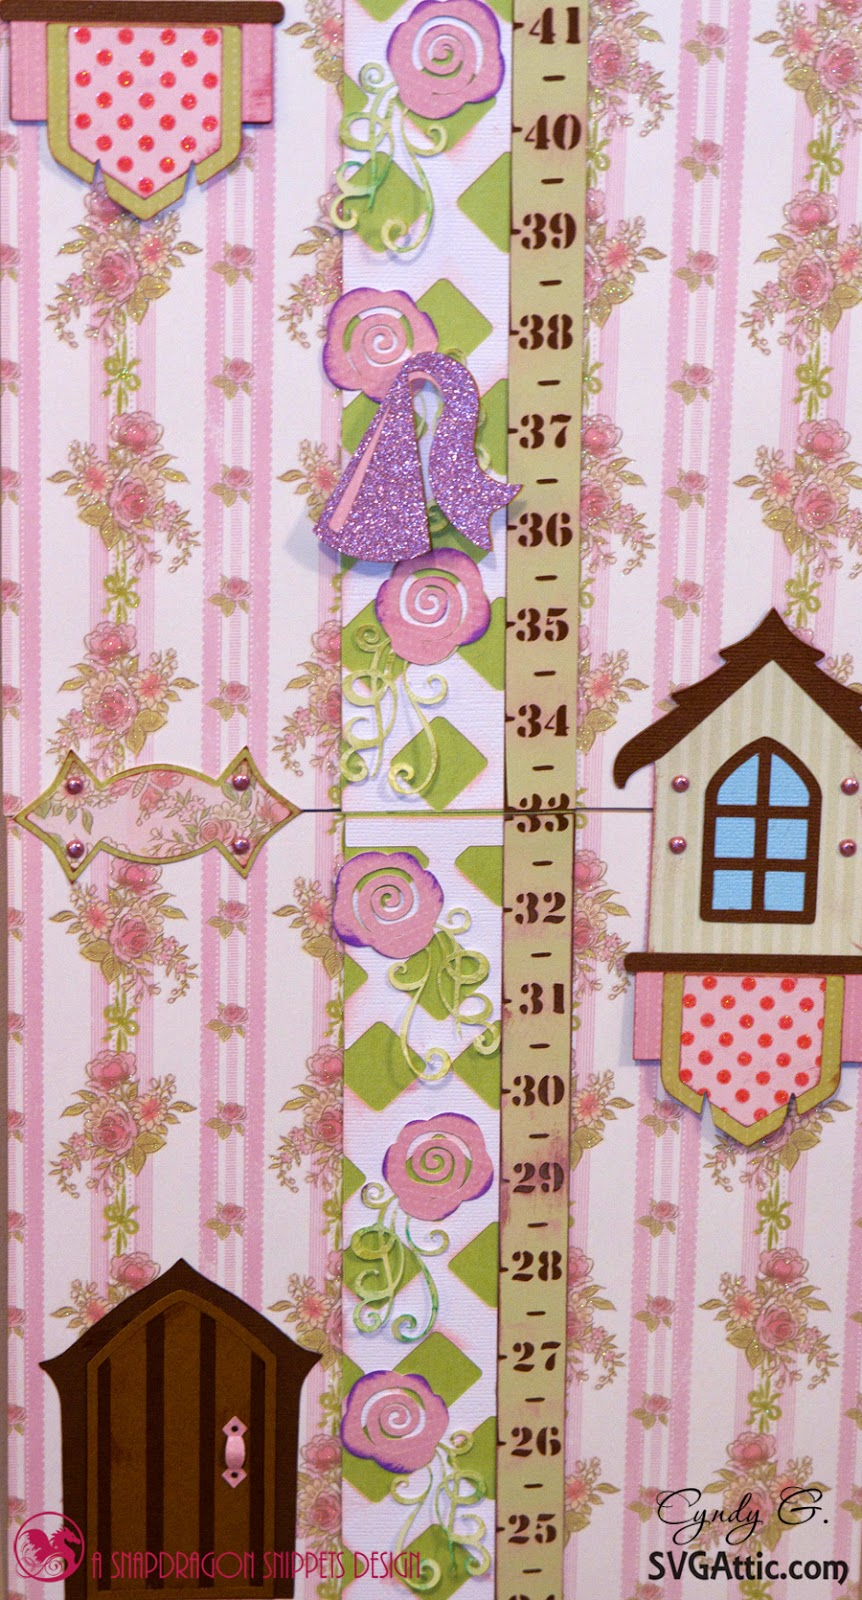 Close up of growth chart showing ruler